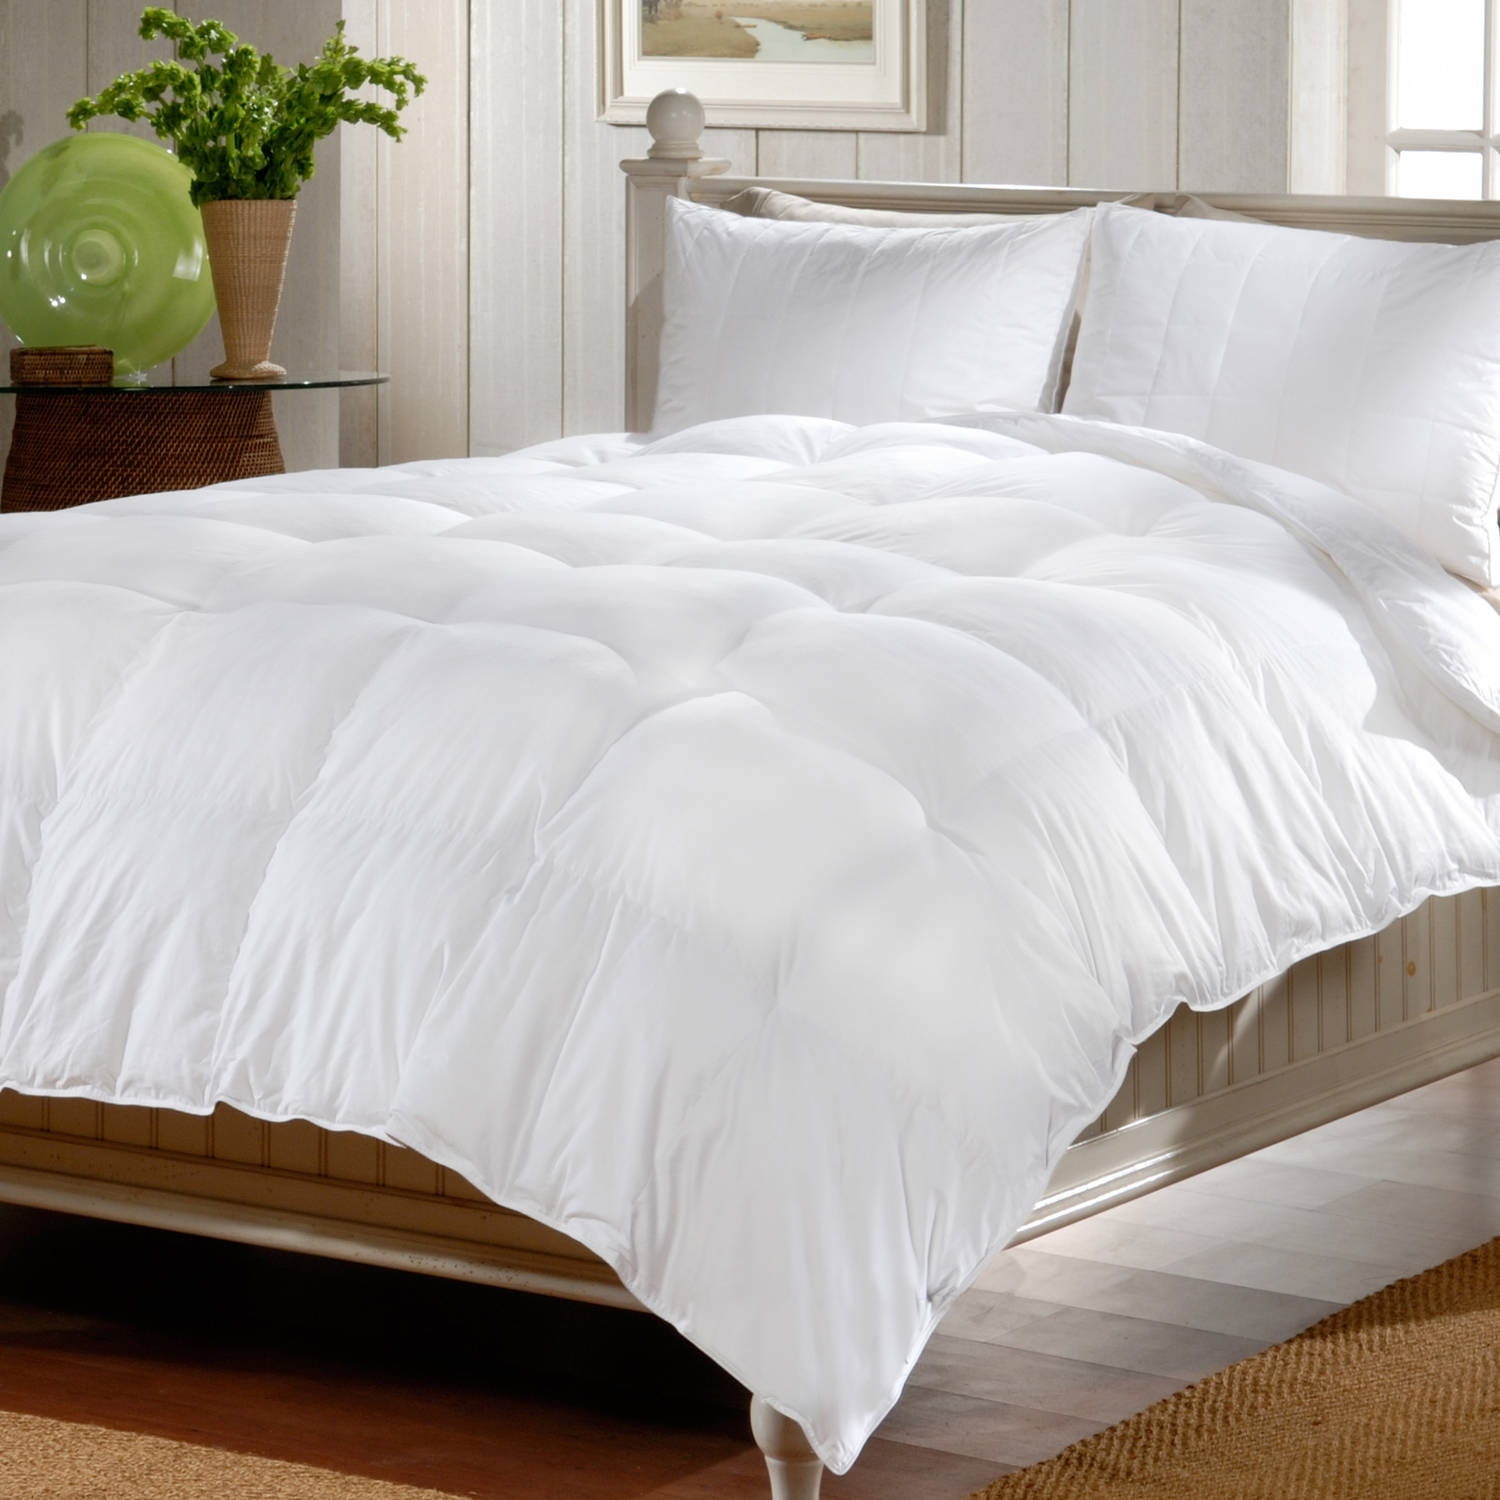 DeepSleep Down Alternative Comforter